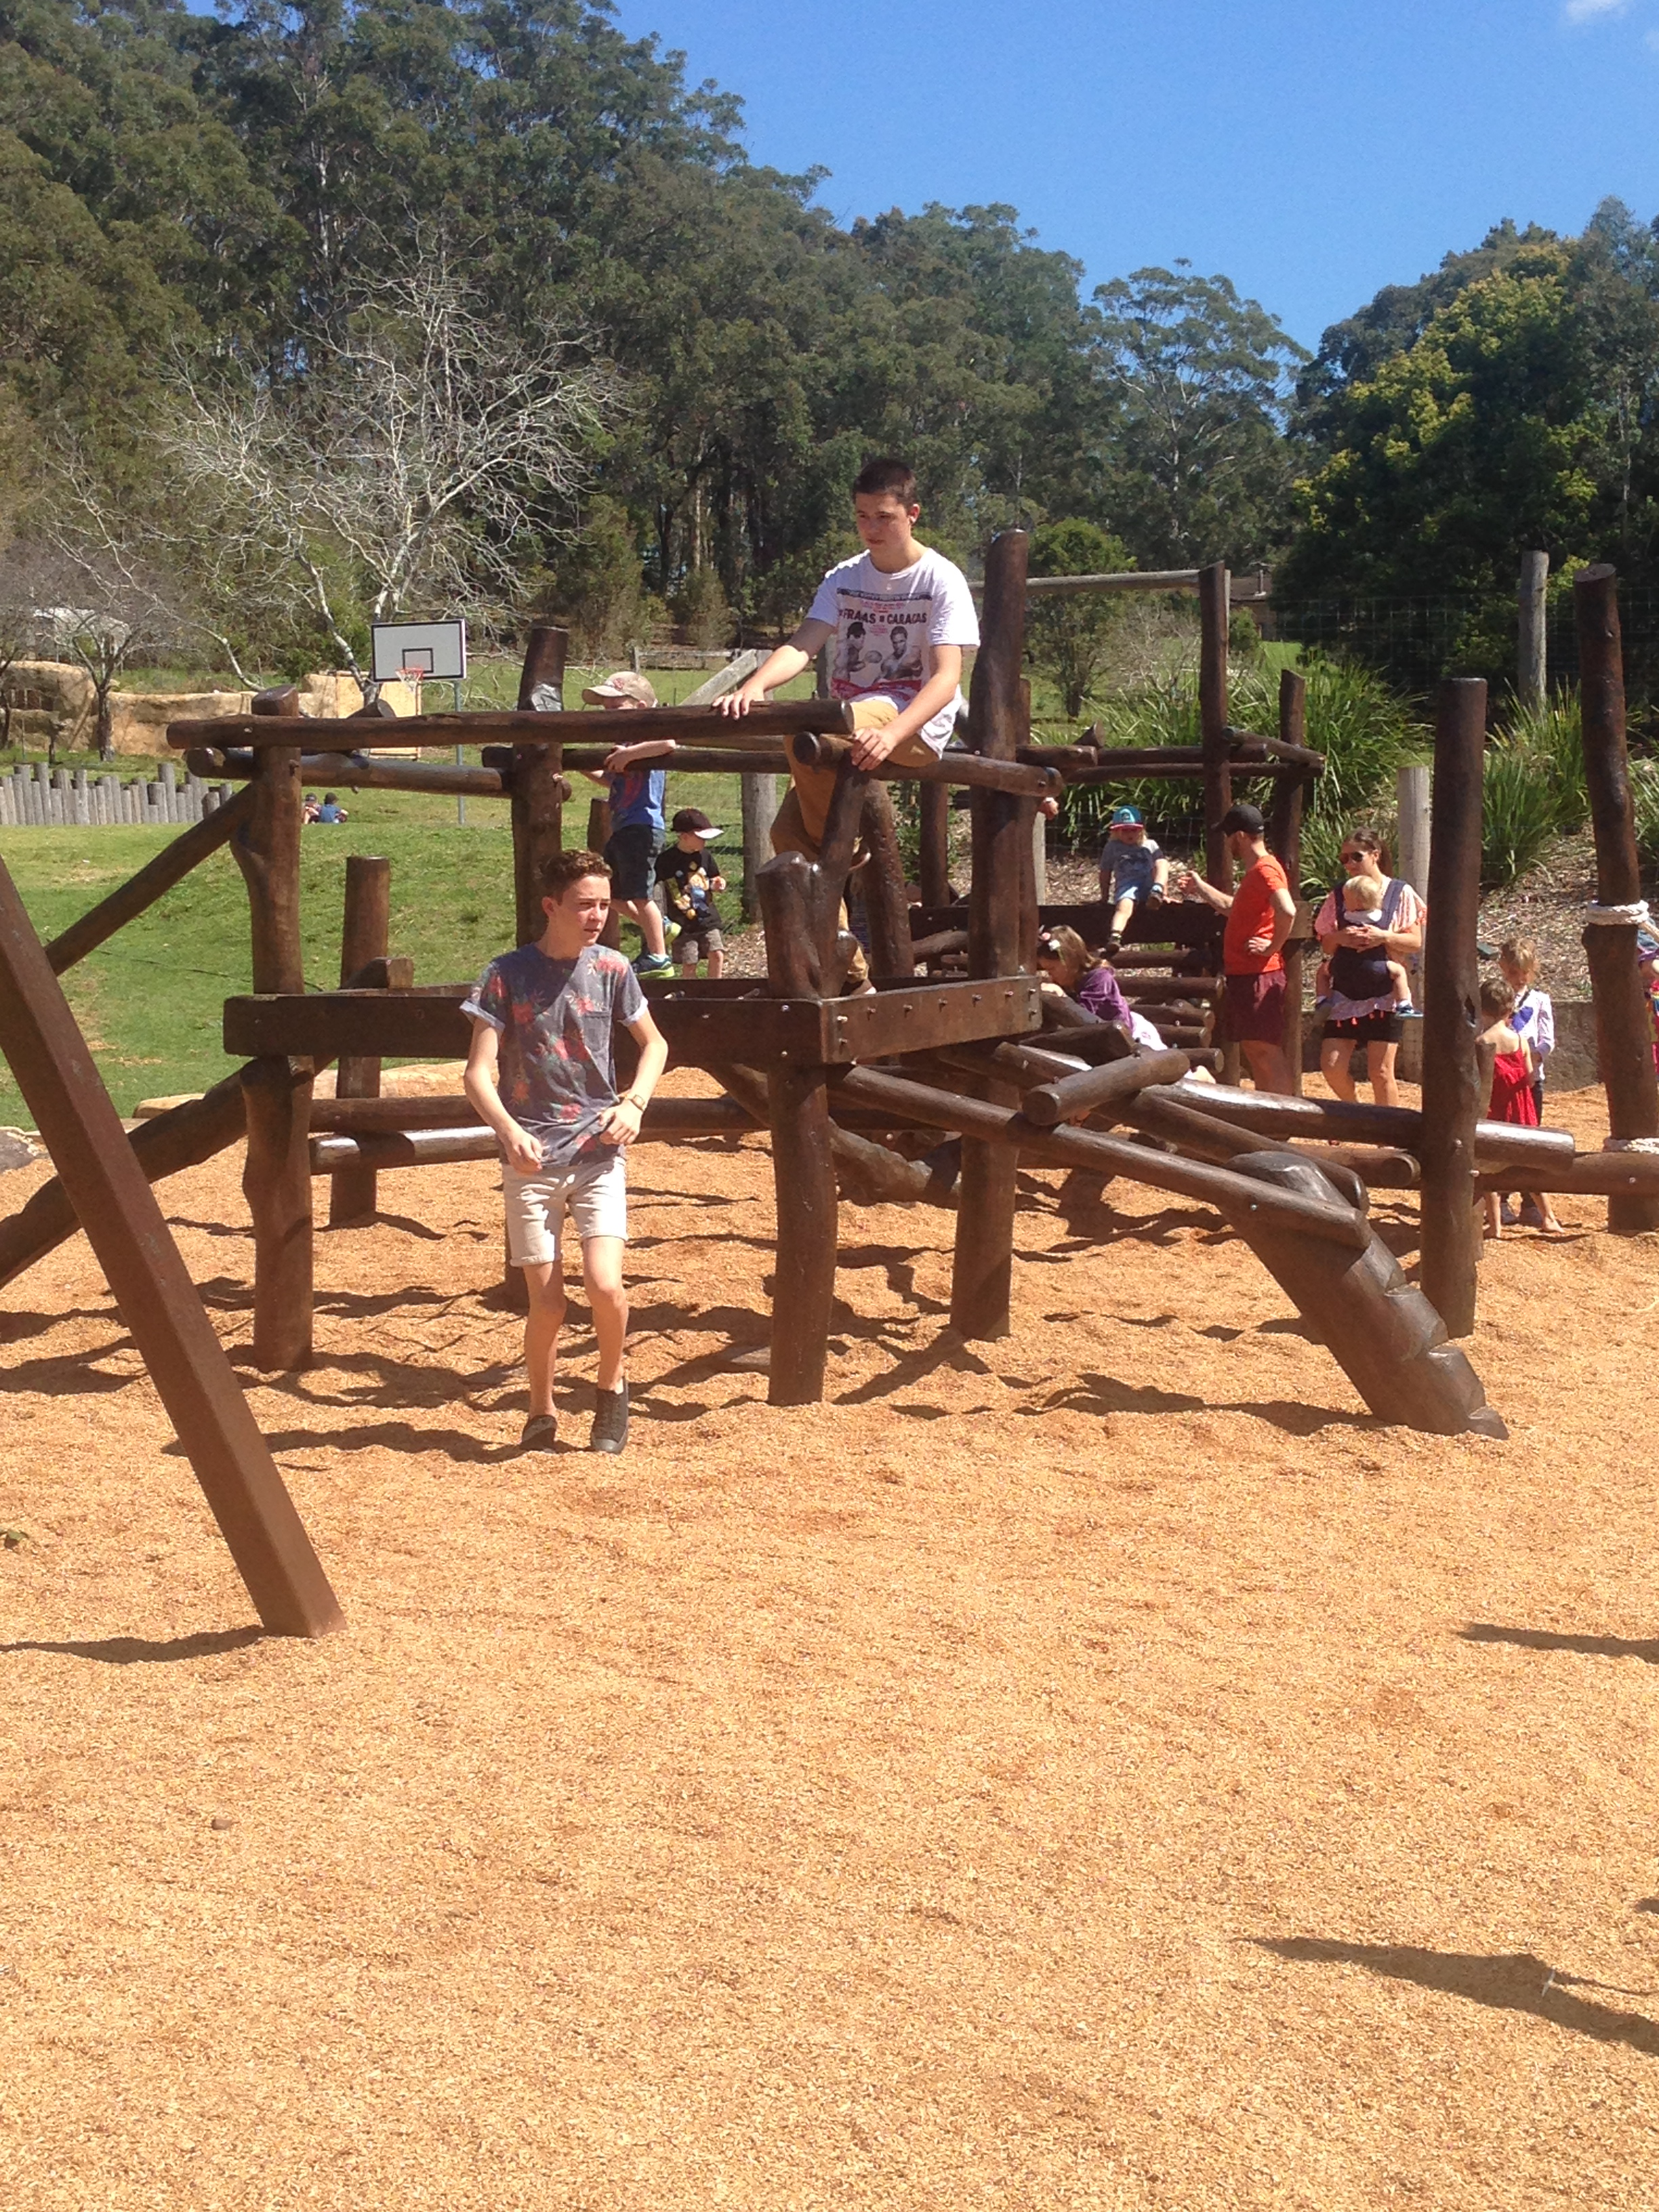 Children playing on the climber